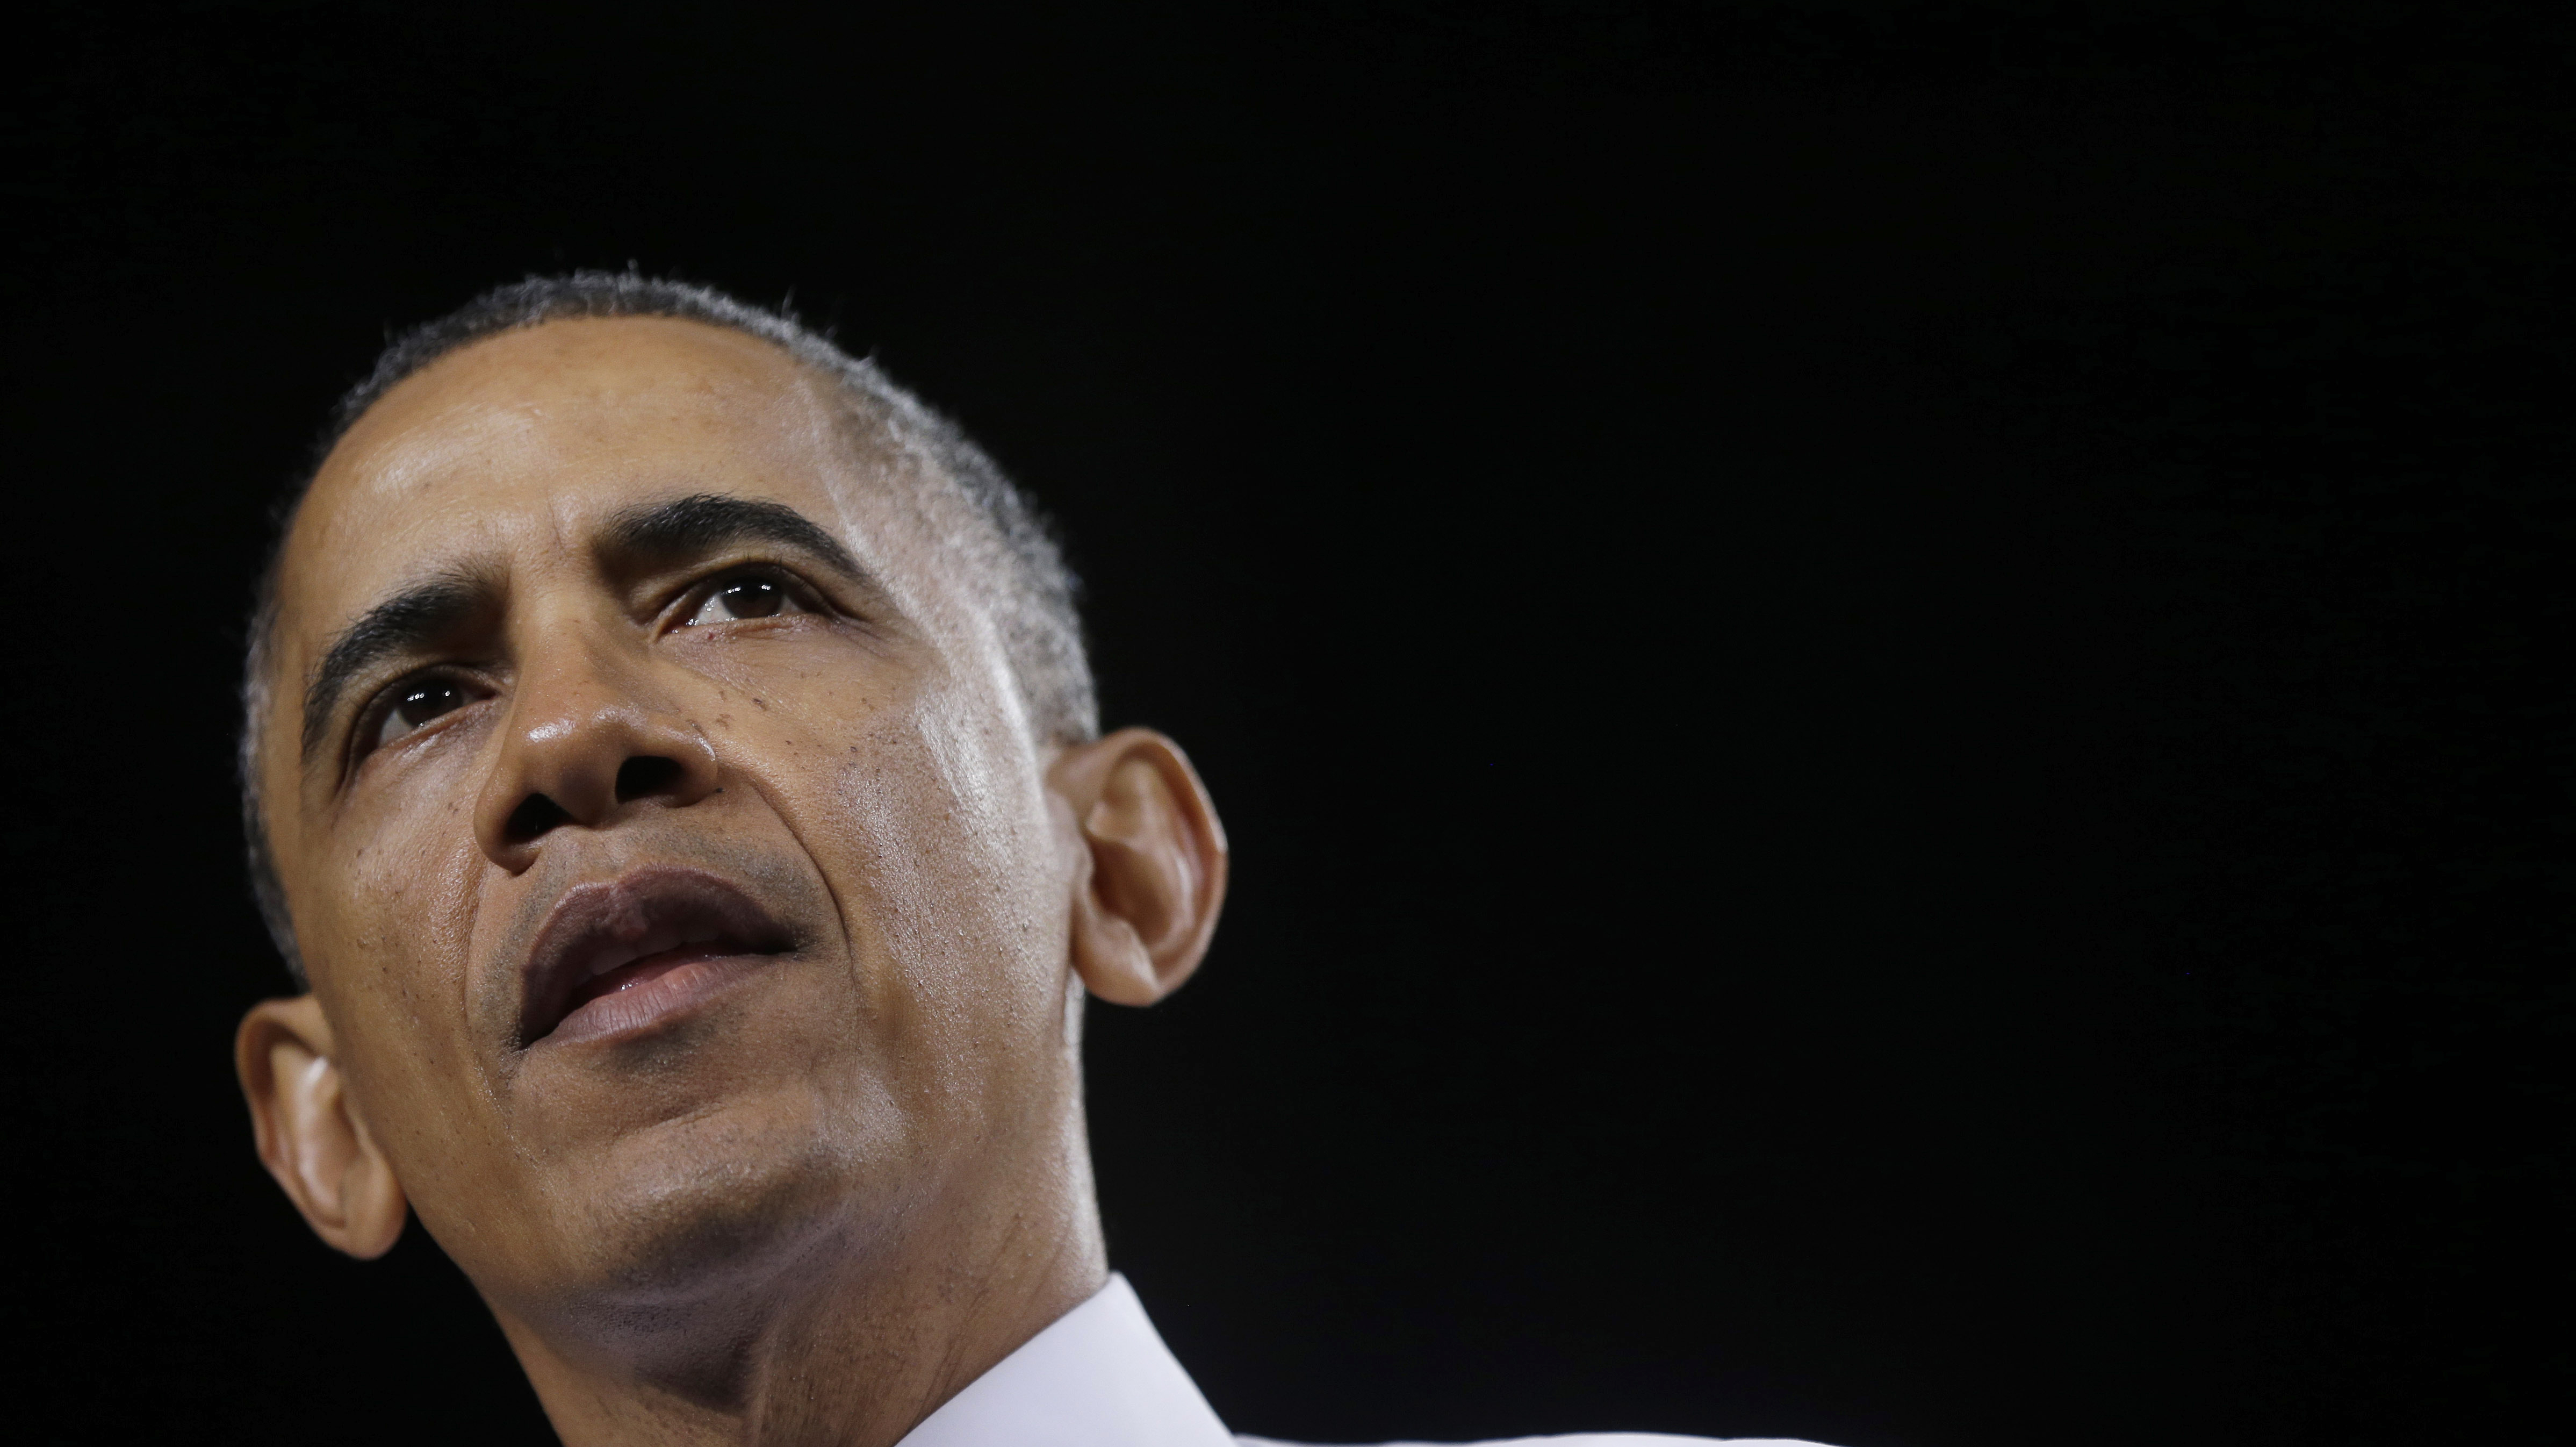 Obama Shifts To Foreign Policy Goals During Second Term